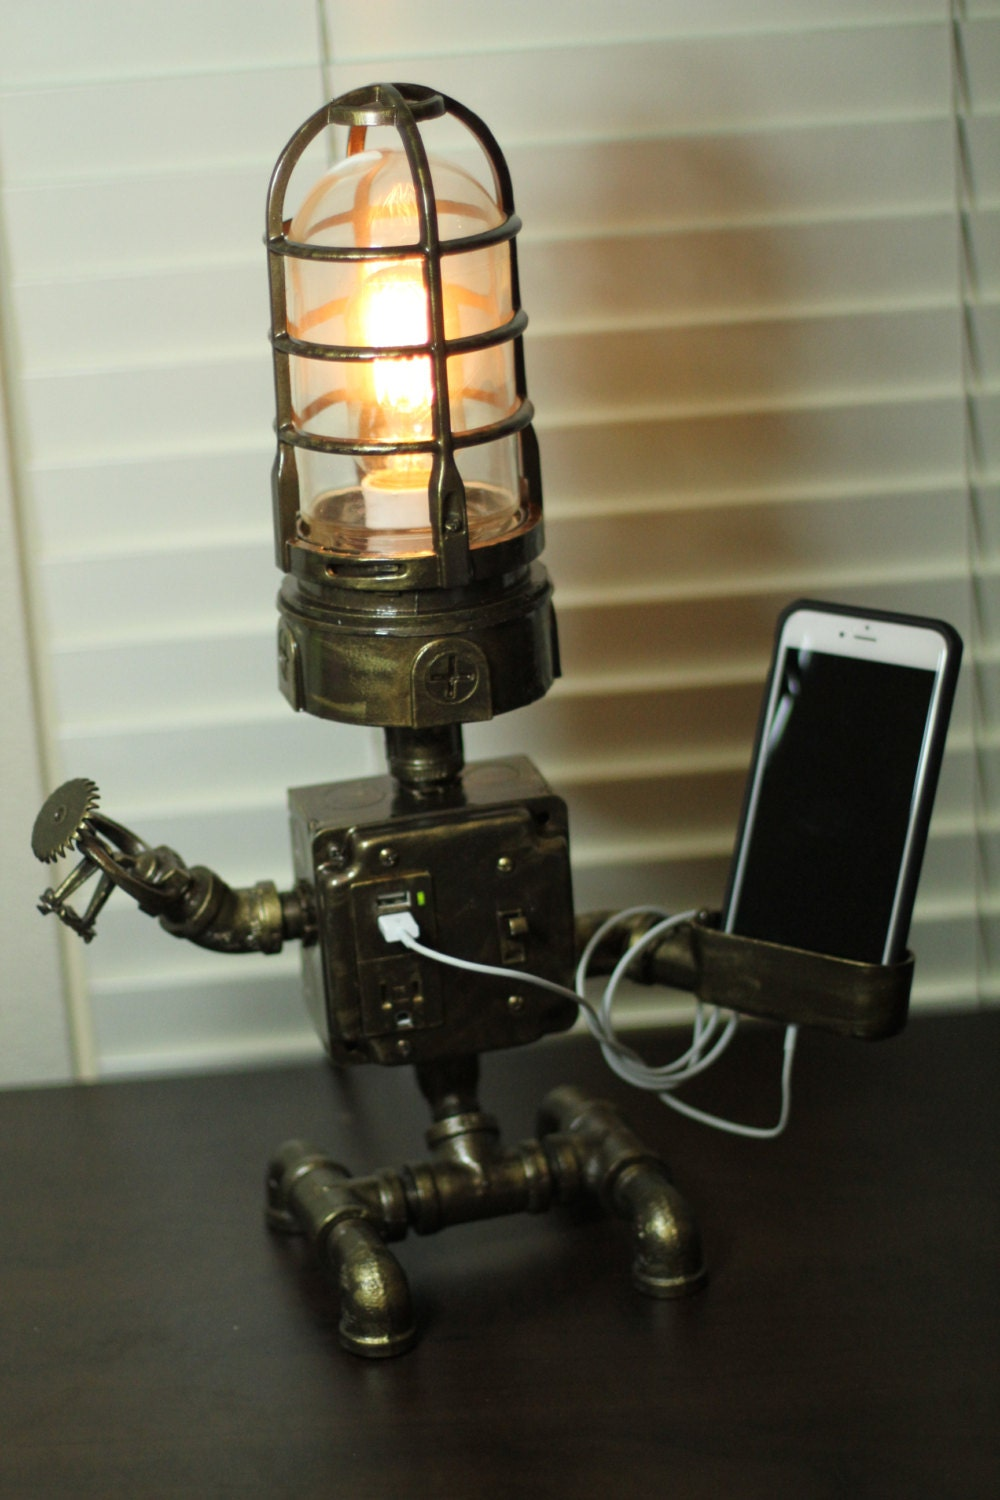 Steampunk Industrial Robot Lamp Usb Device Cradle By